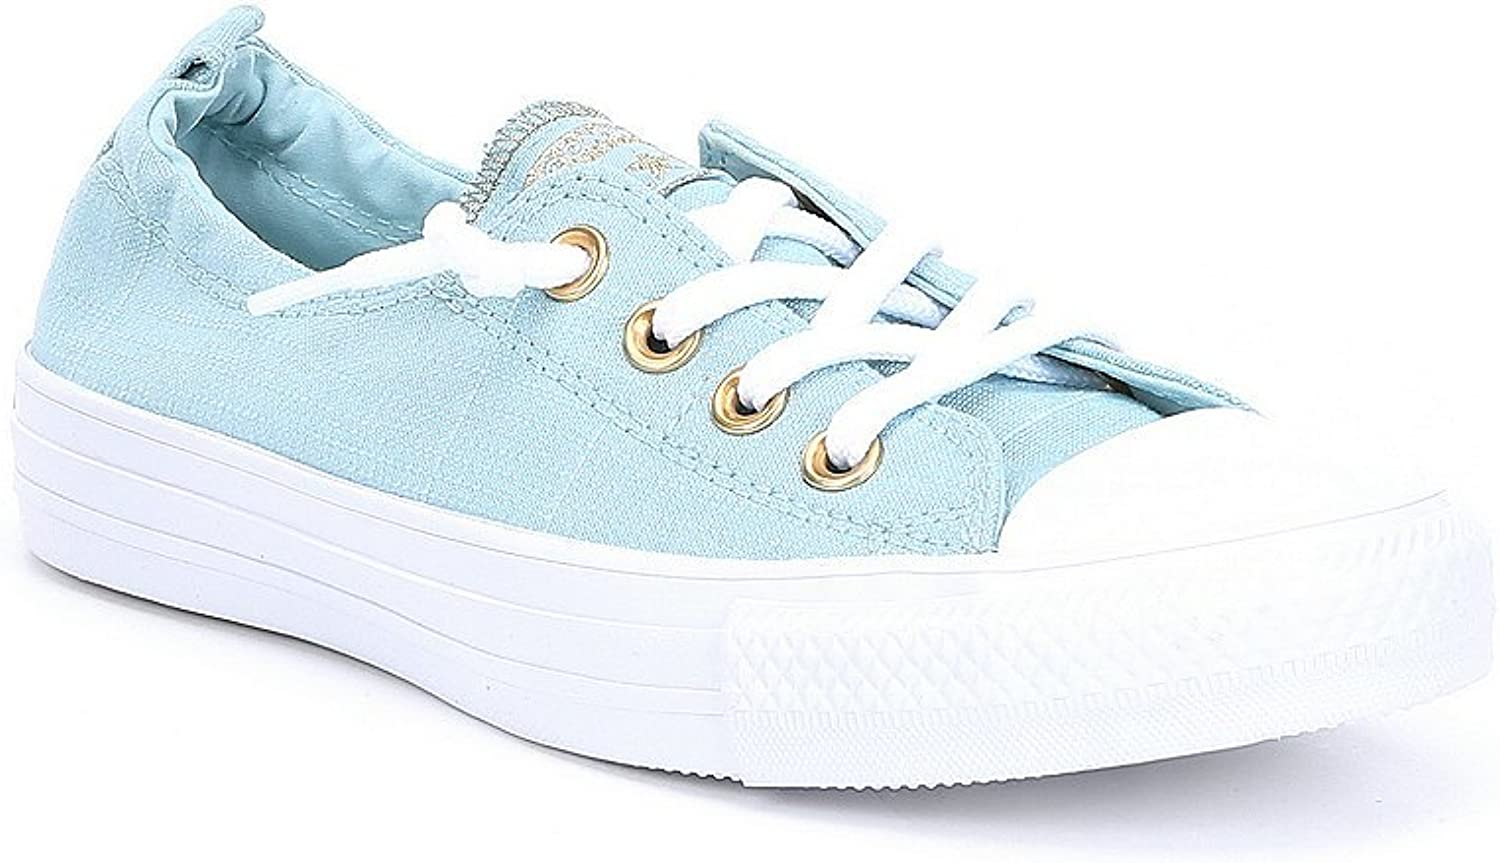 Converse Women's Chuck Taylor All Star Shoreline Perfed Sneaker